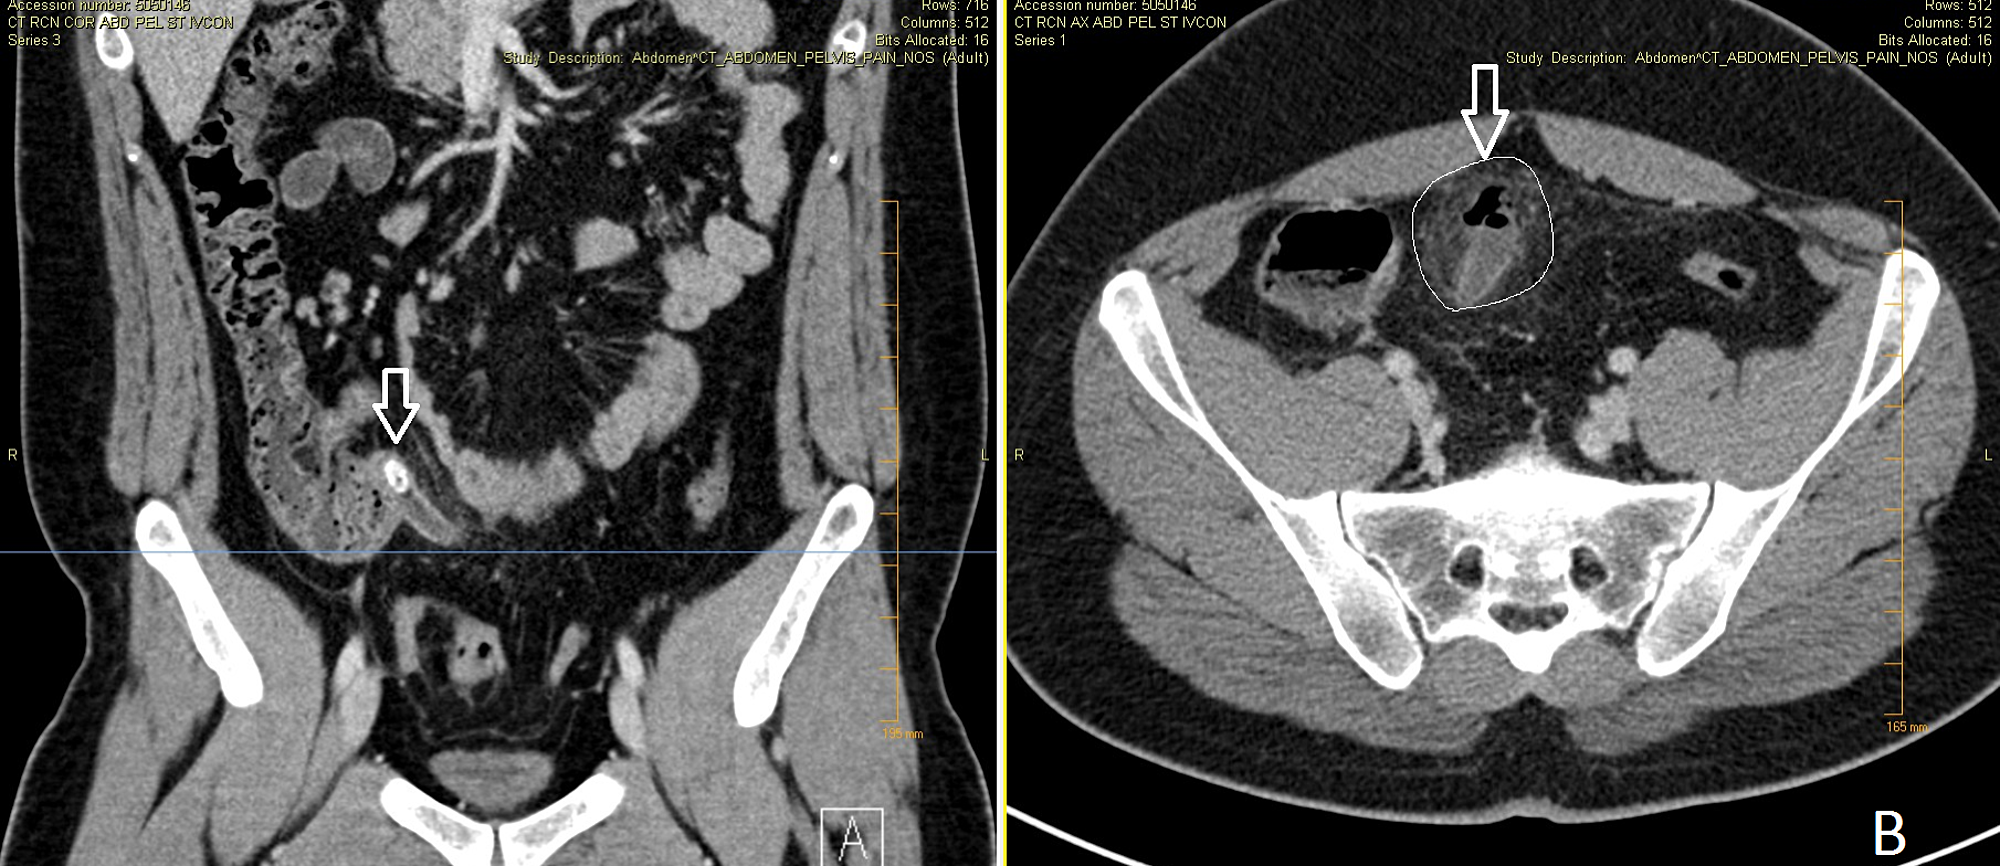 Adult appendicitis in